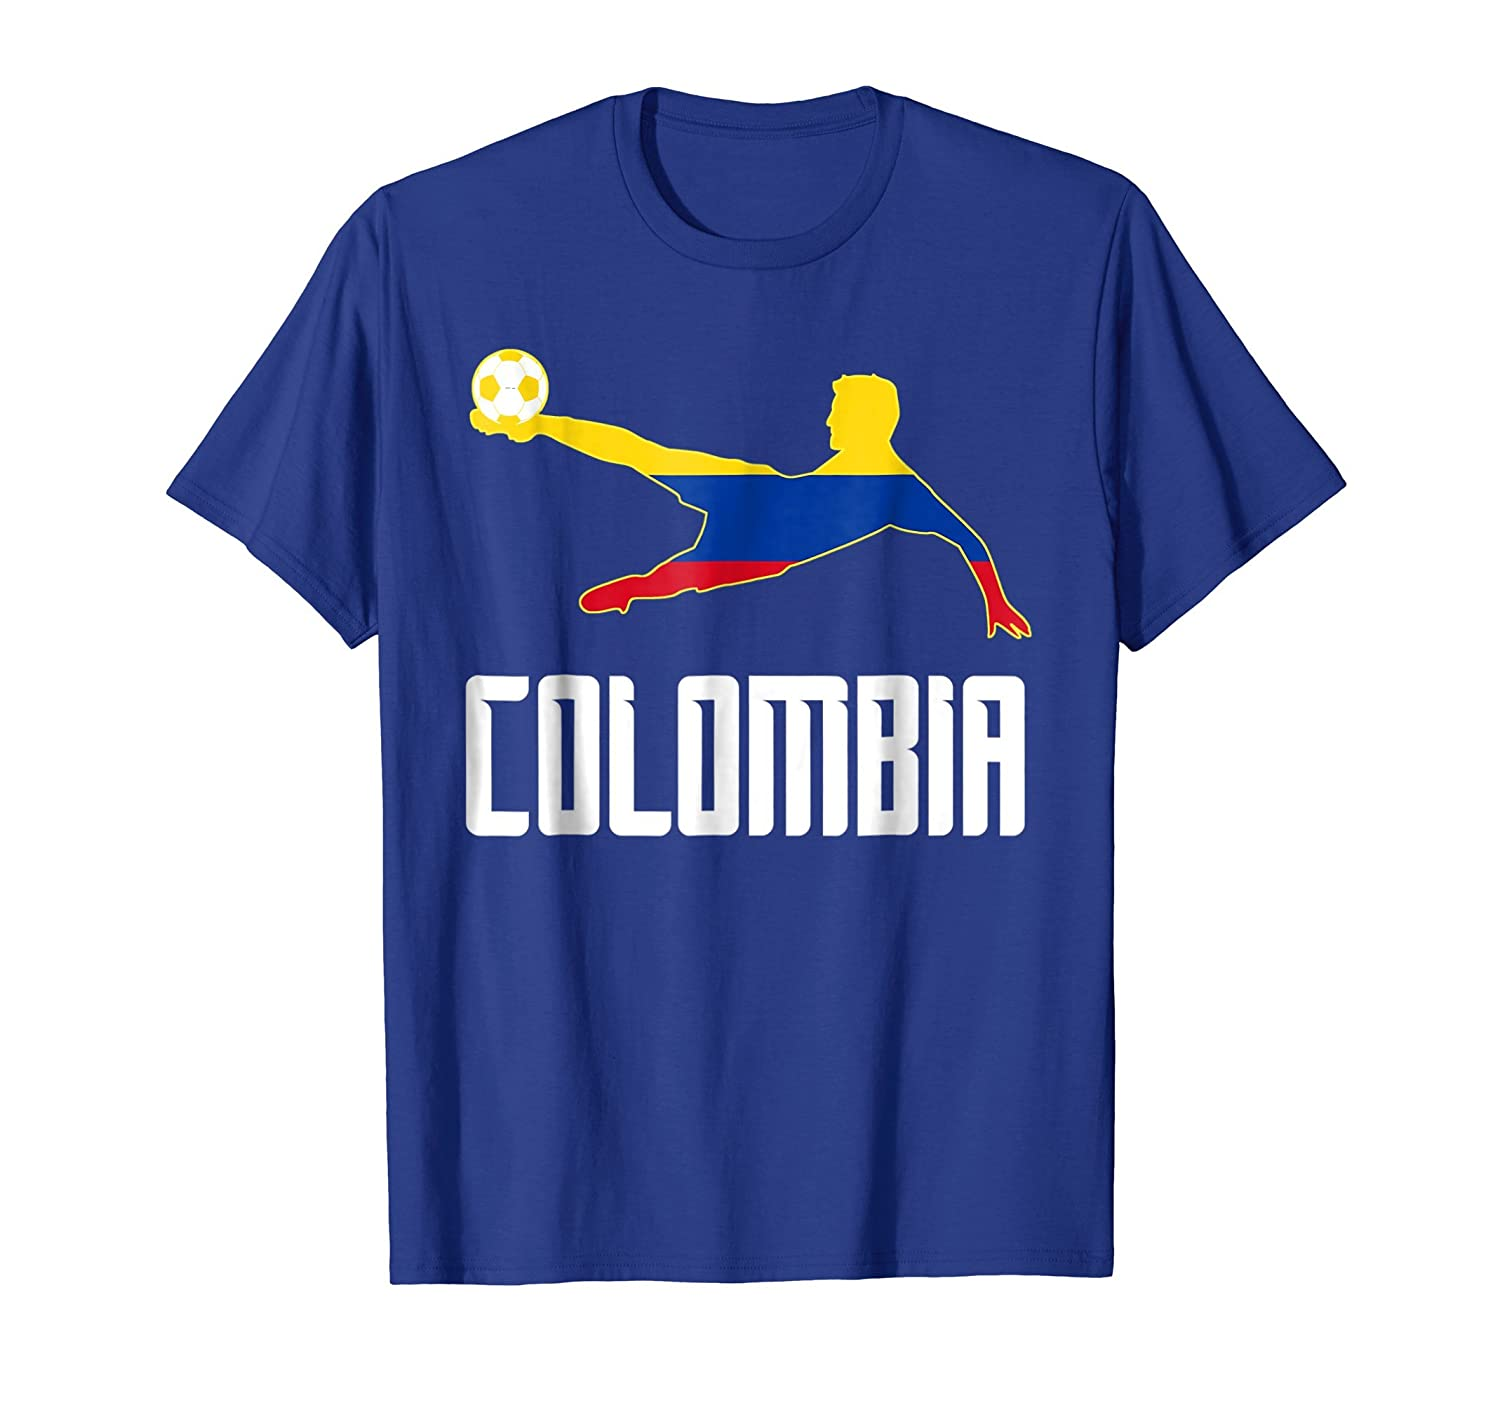 Amazon.com: Camiseta Futbol Colombia - Colombian Soccer T-shirt: Clothing